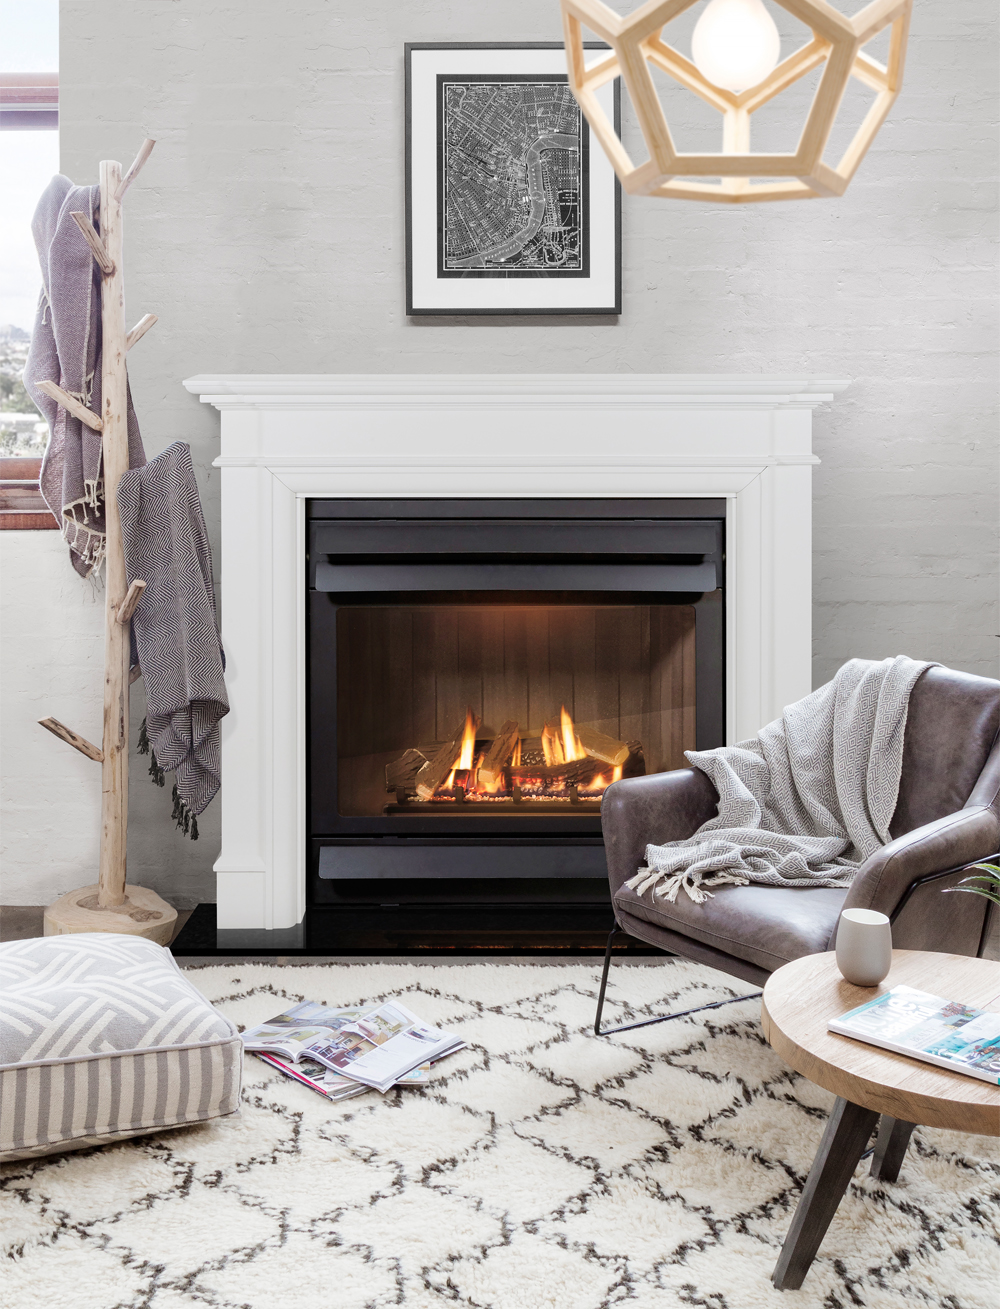 Turning up the heat: Inside this season's hottest fireplace products - indoor wood gas fireplace